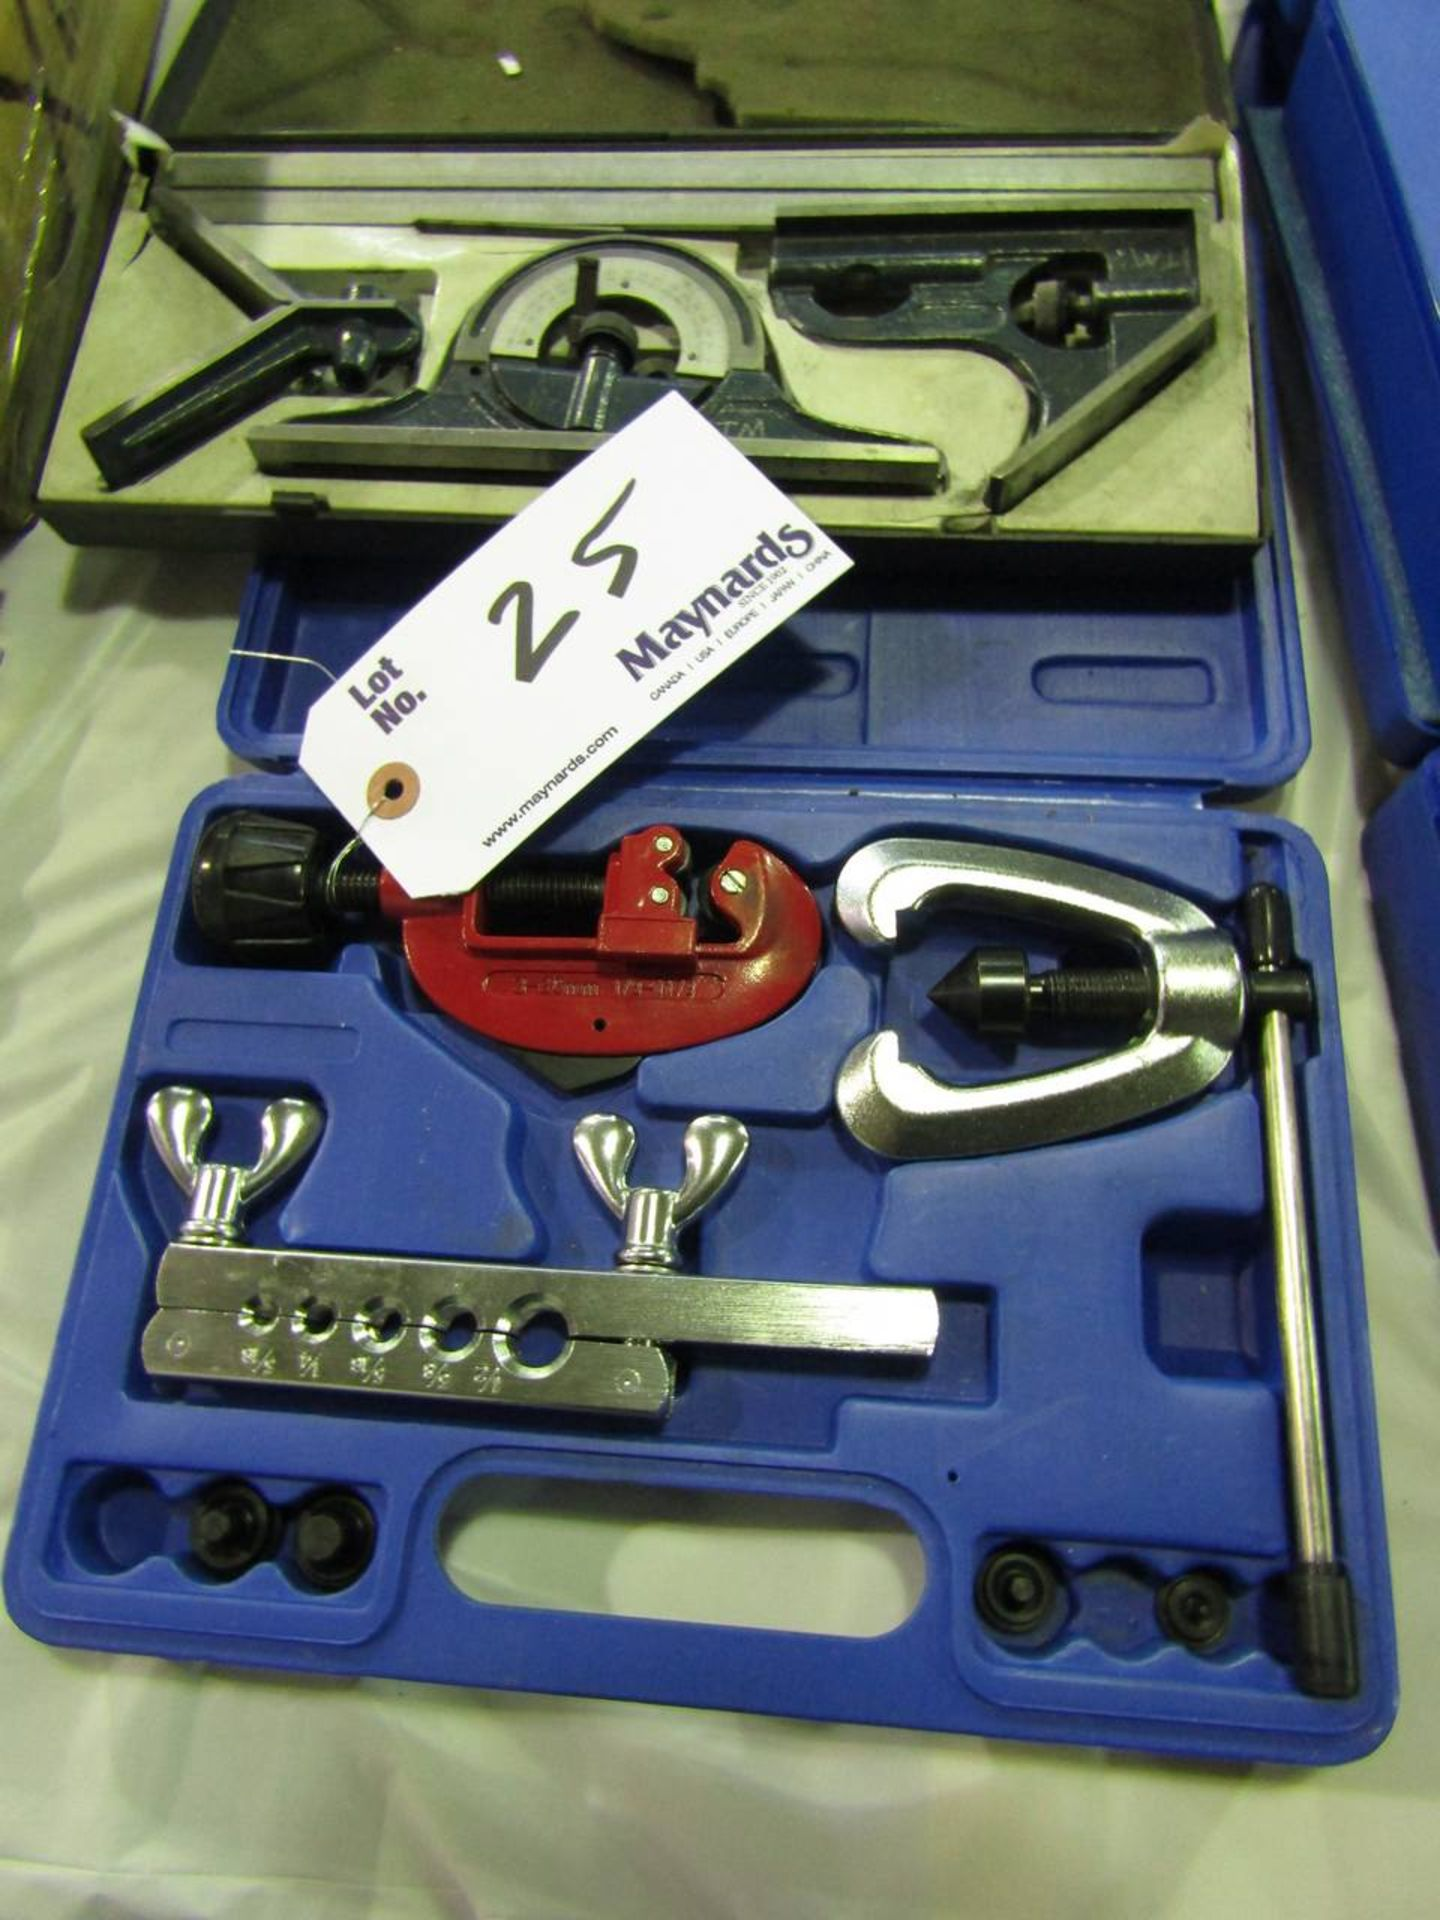 Pipe Cutter Kit and a Square